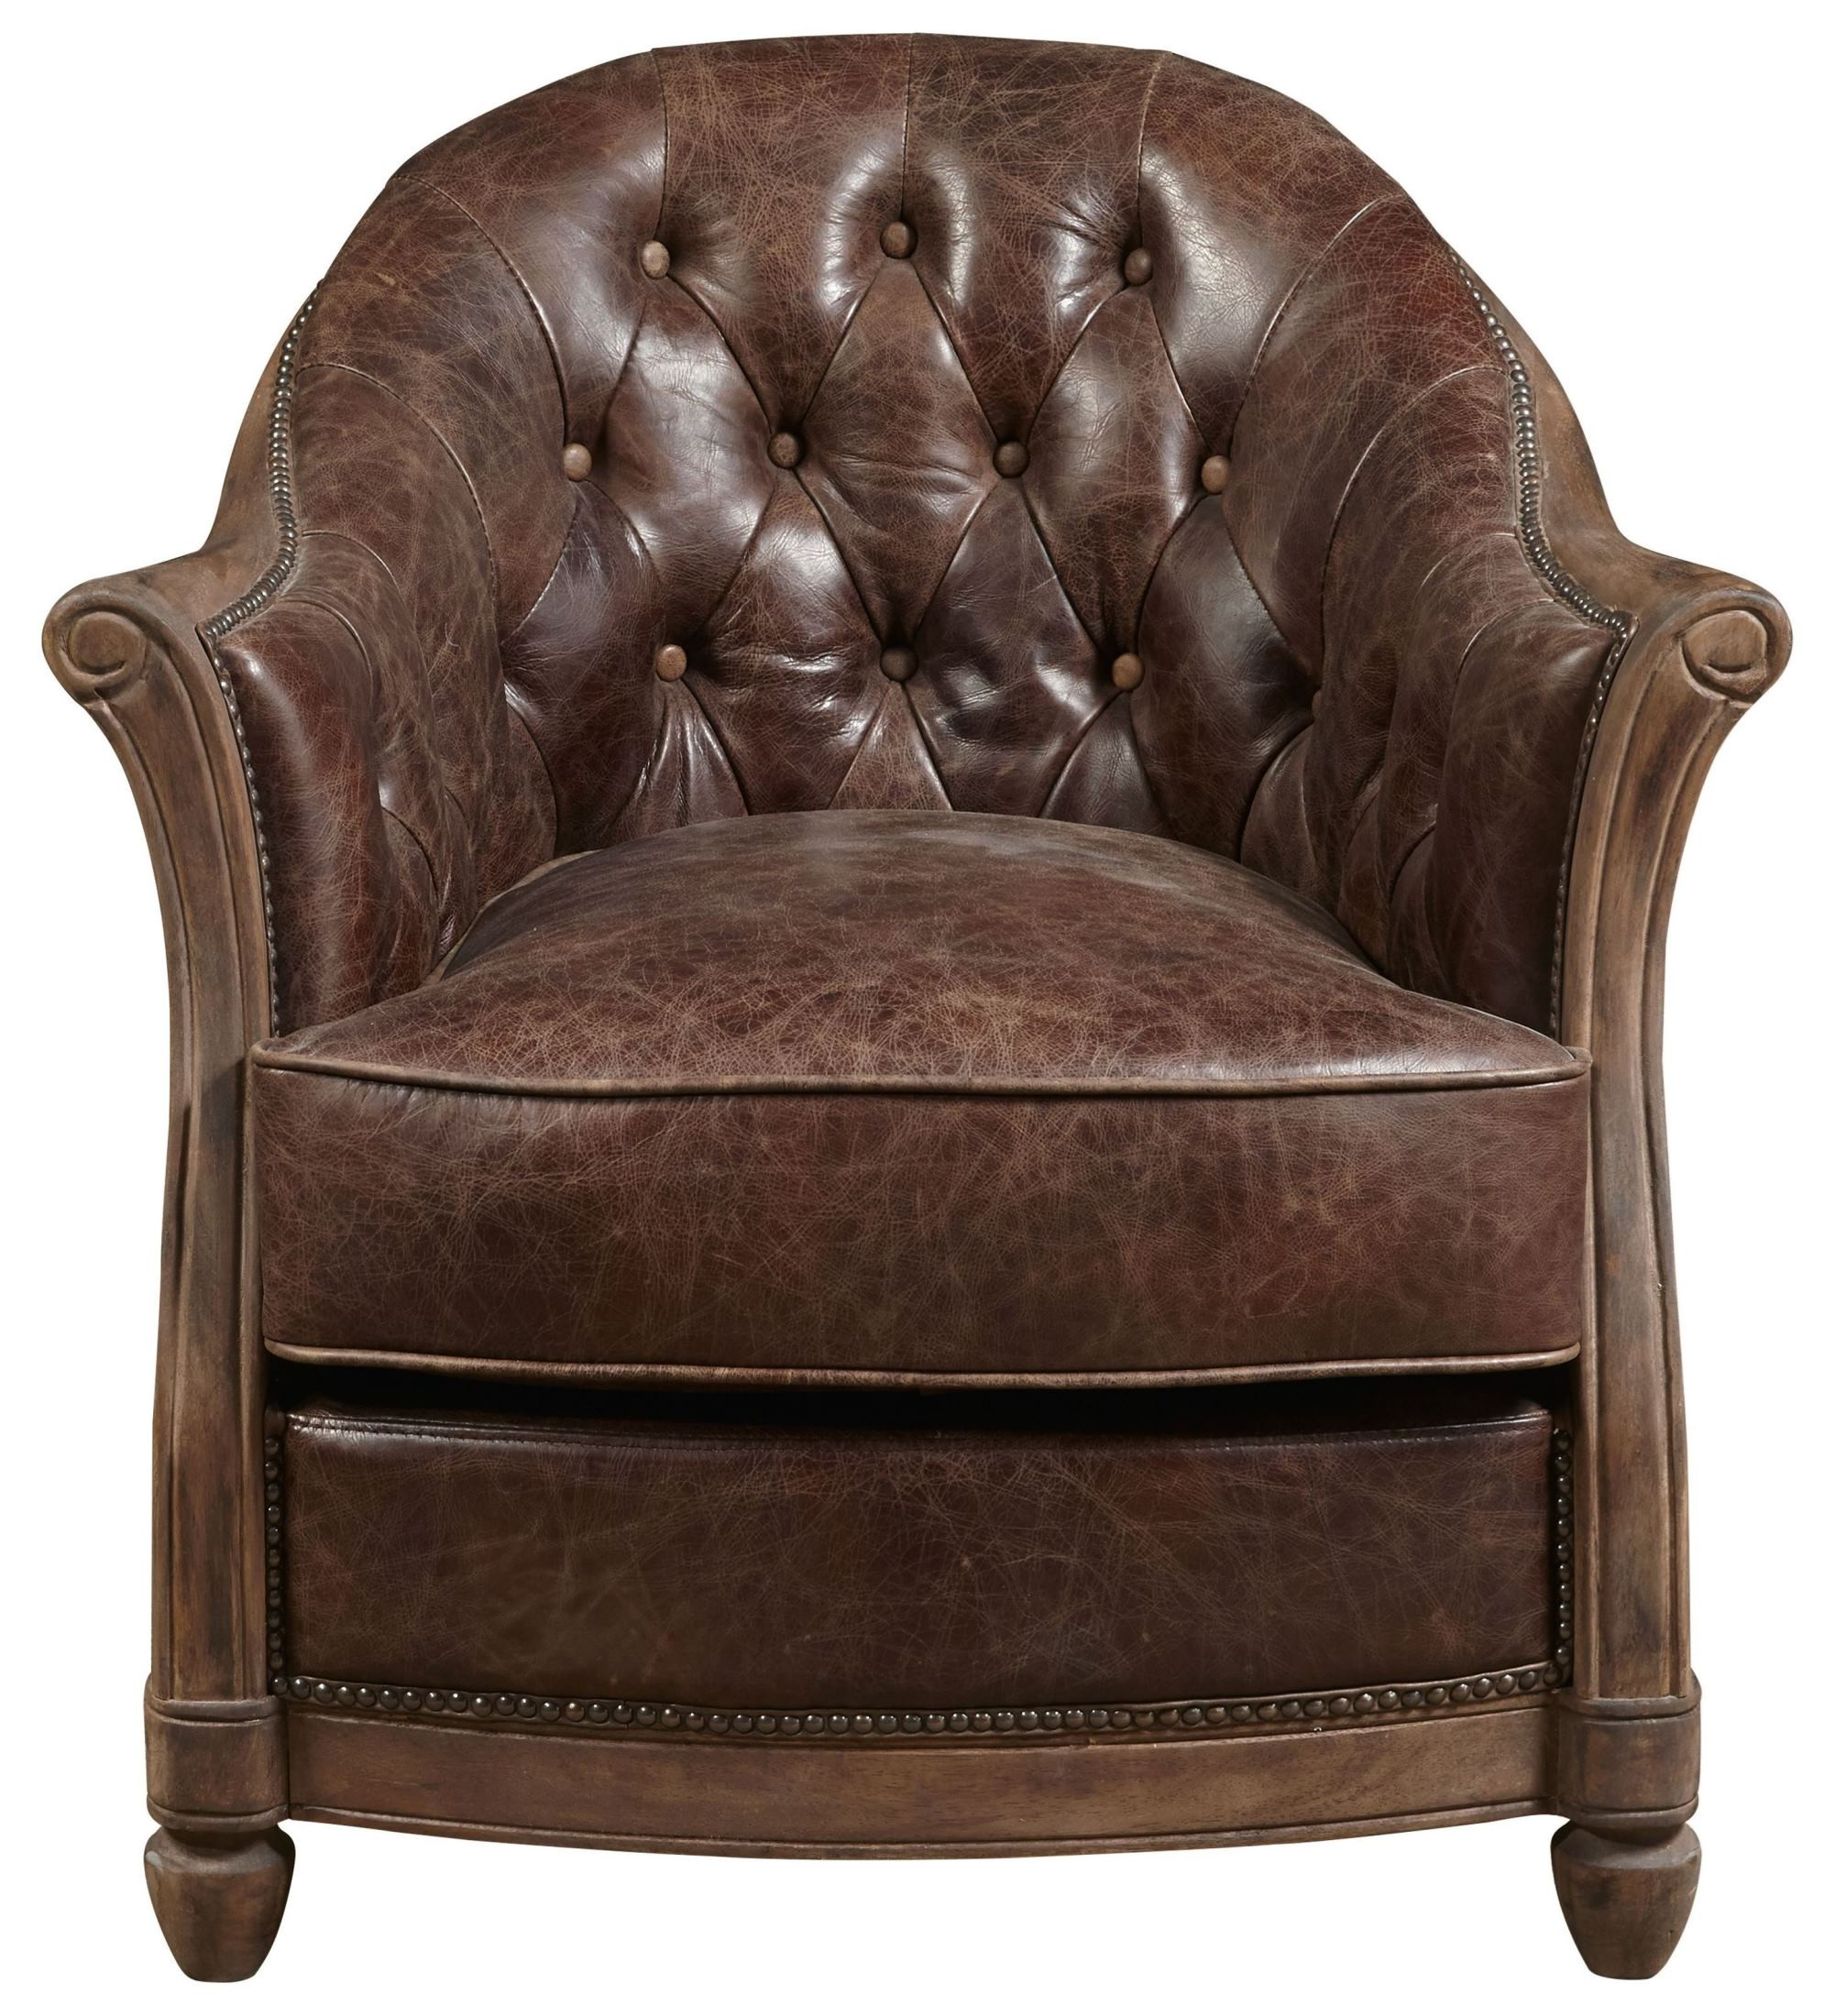 Tan Leather Accent Chair: Andrew Brown Leather Accent Chair, P006205, Pulaski